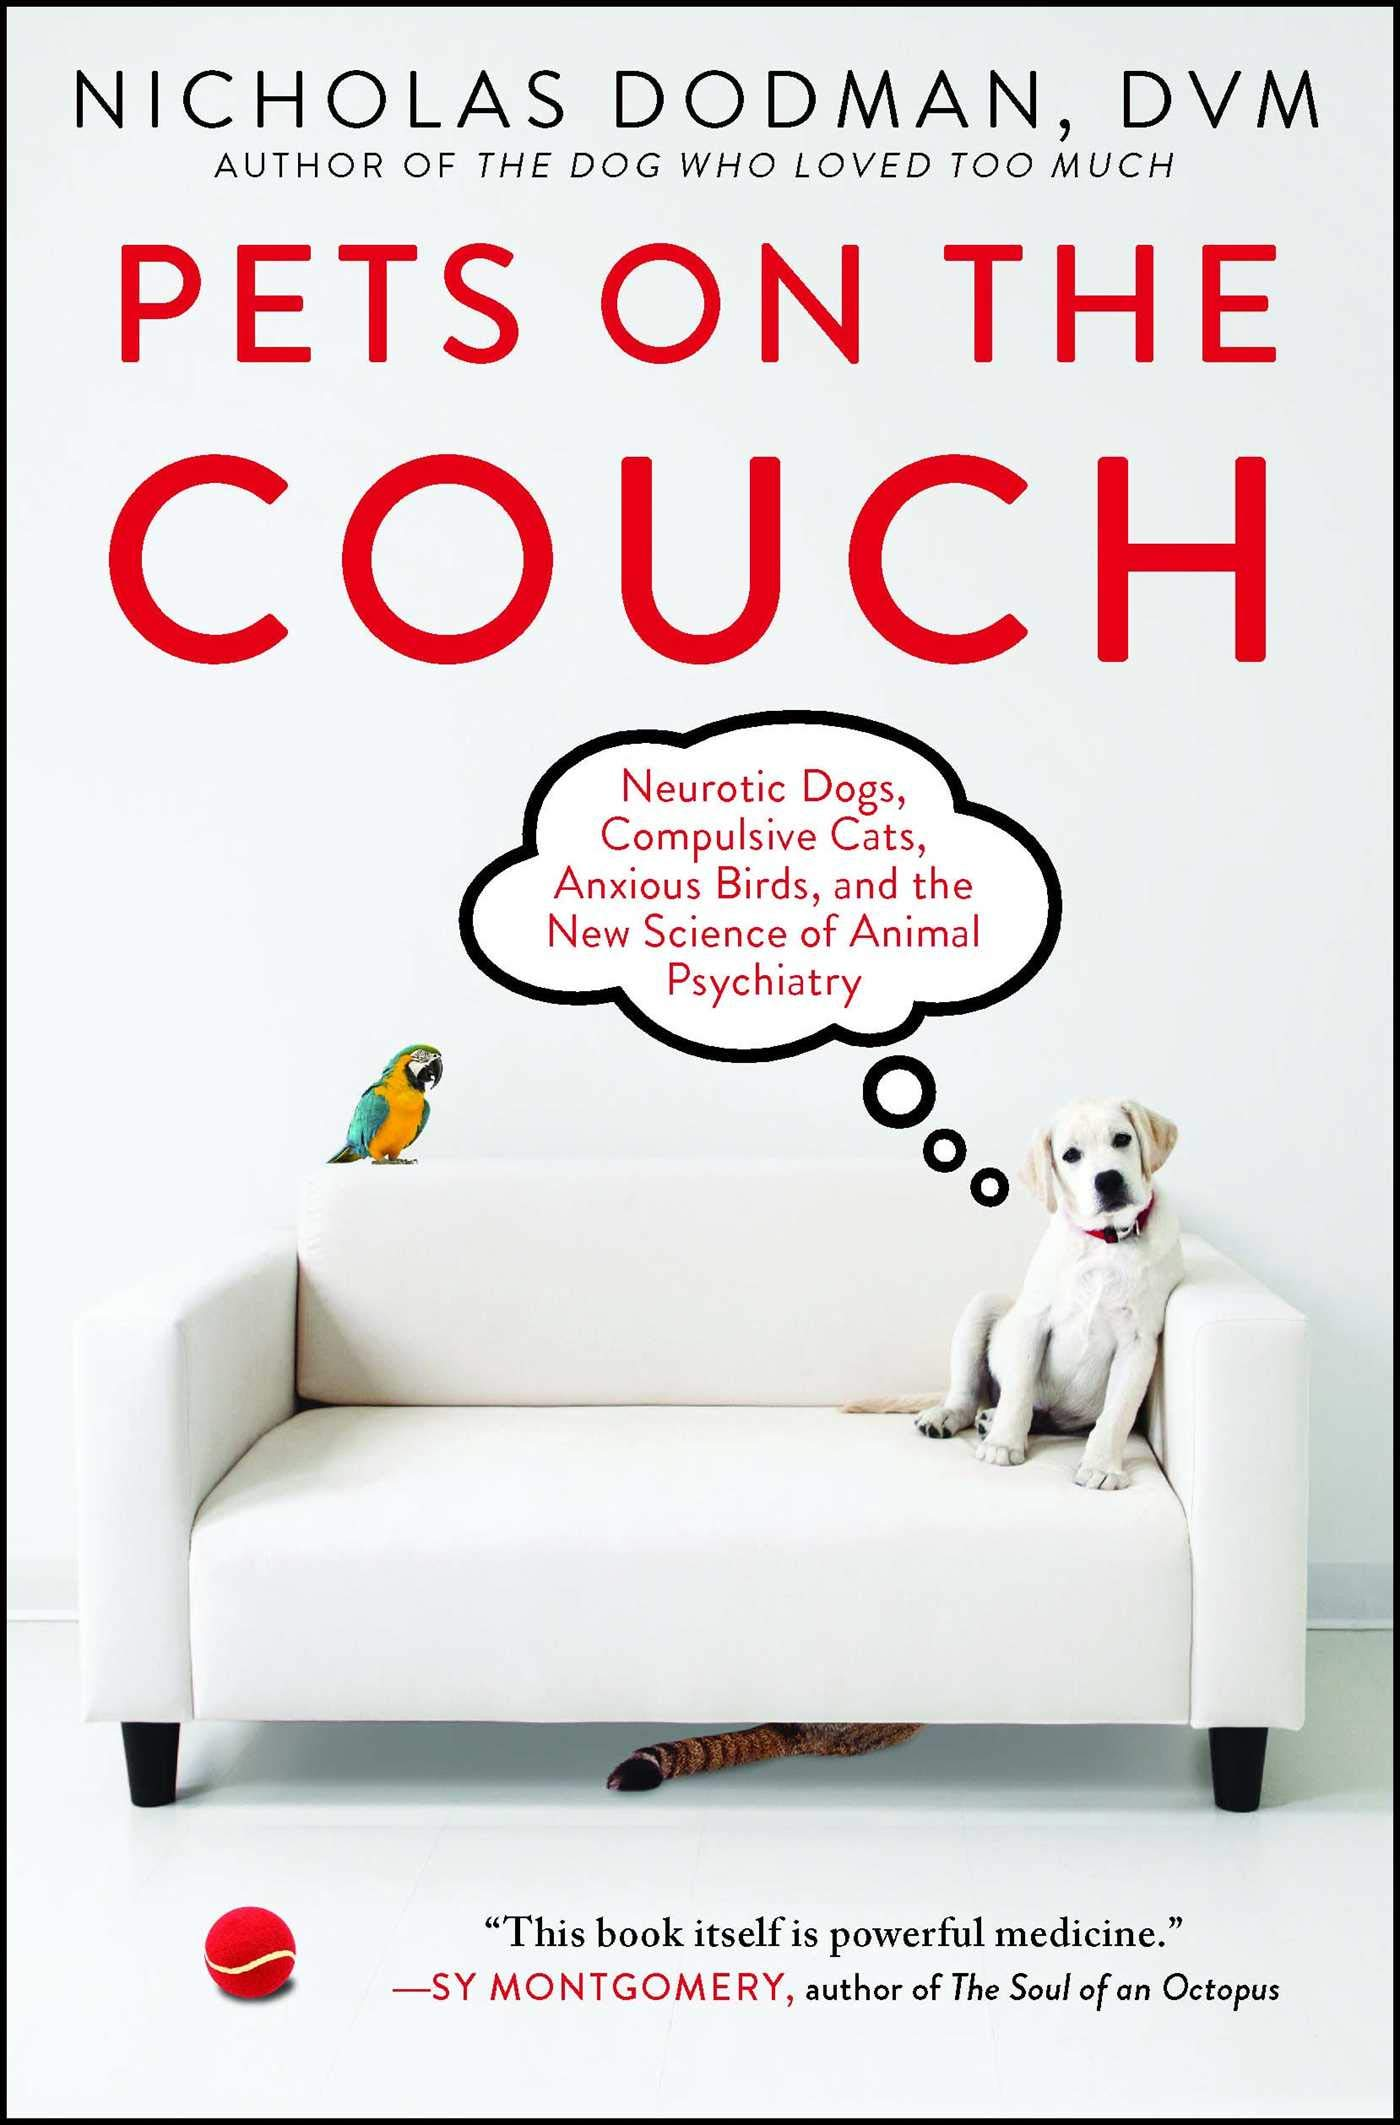 Pets on the Couch: Neurotic Dogs, Compulsive Cats, Anxious Birds